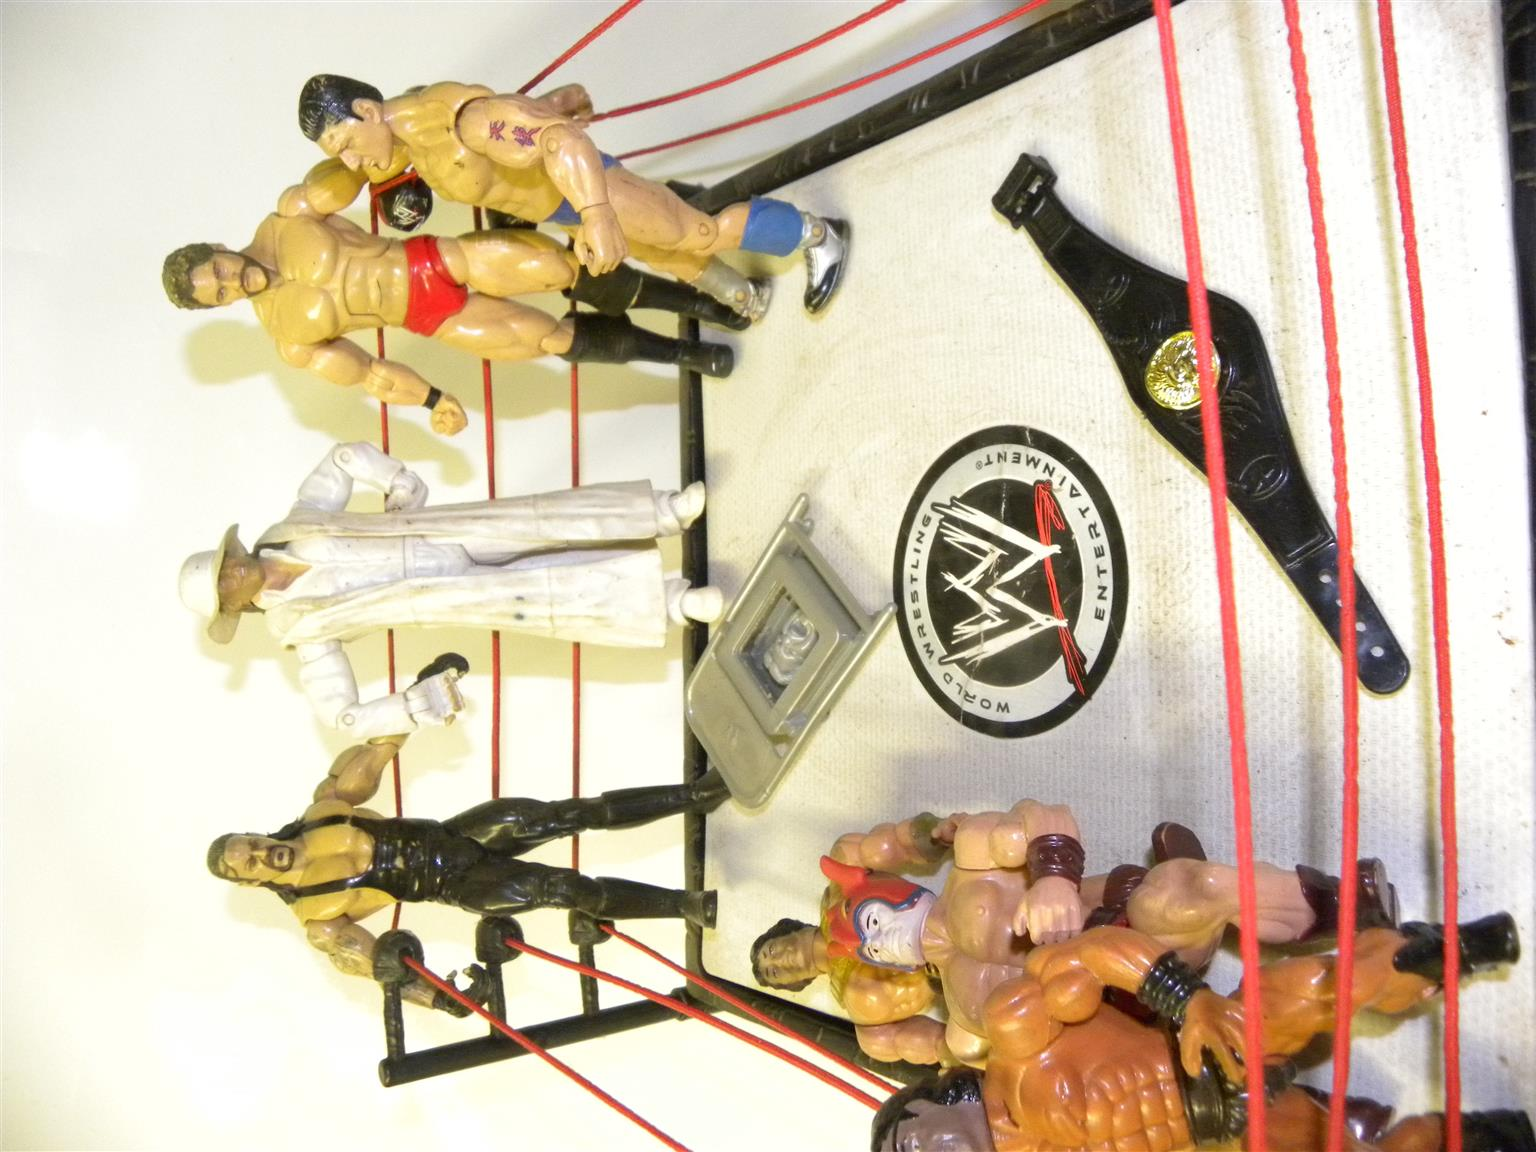 WWE Wrestling figurines and ring